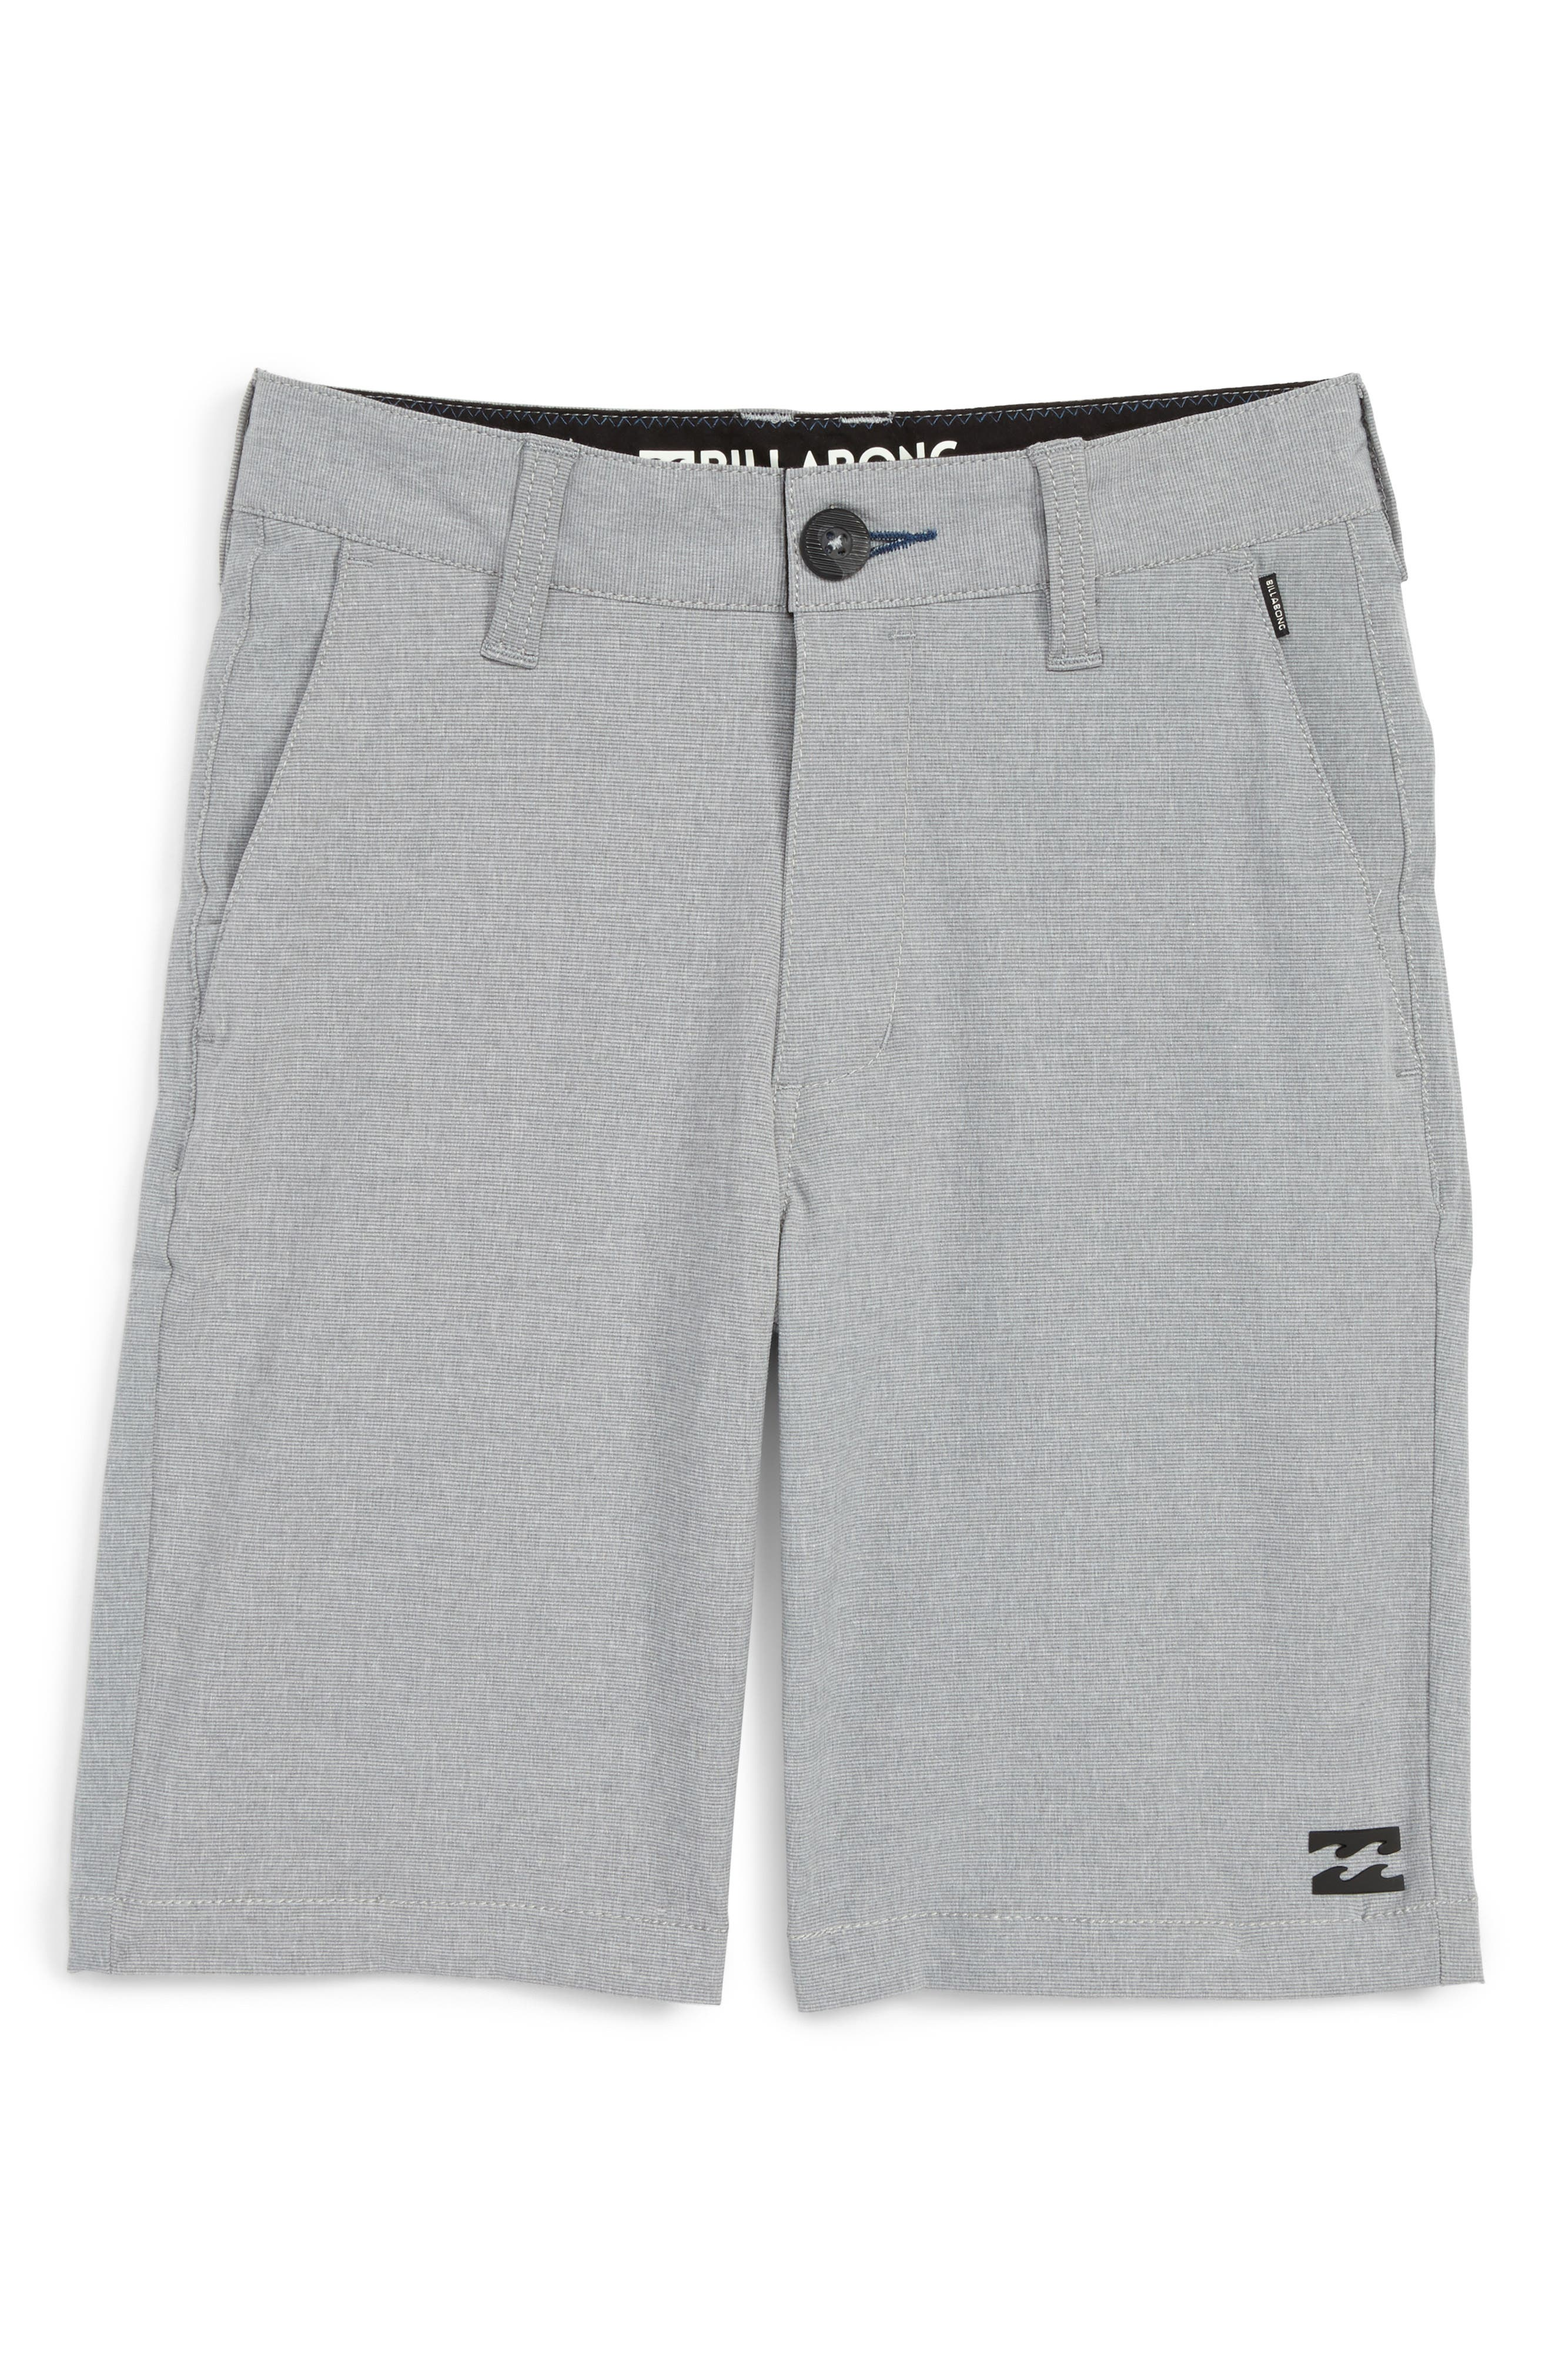 Crossfire X Submersible Hybrid Shorts,                         Main,                         color, Grey